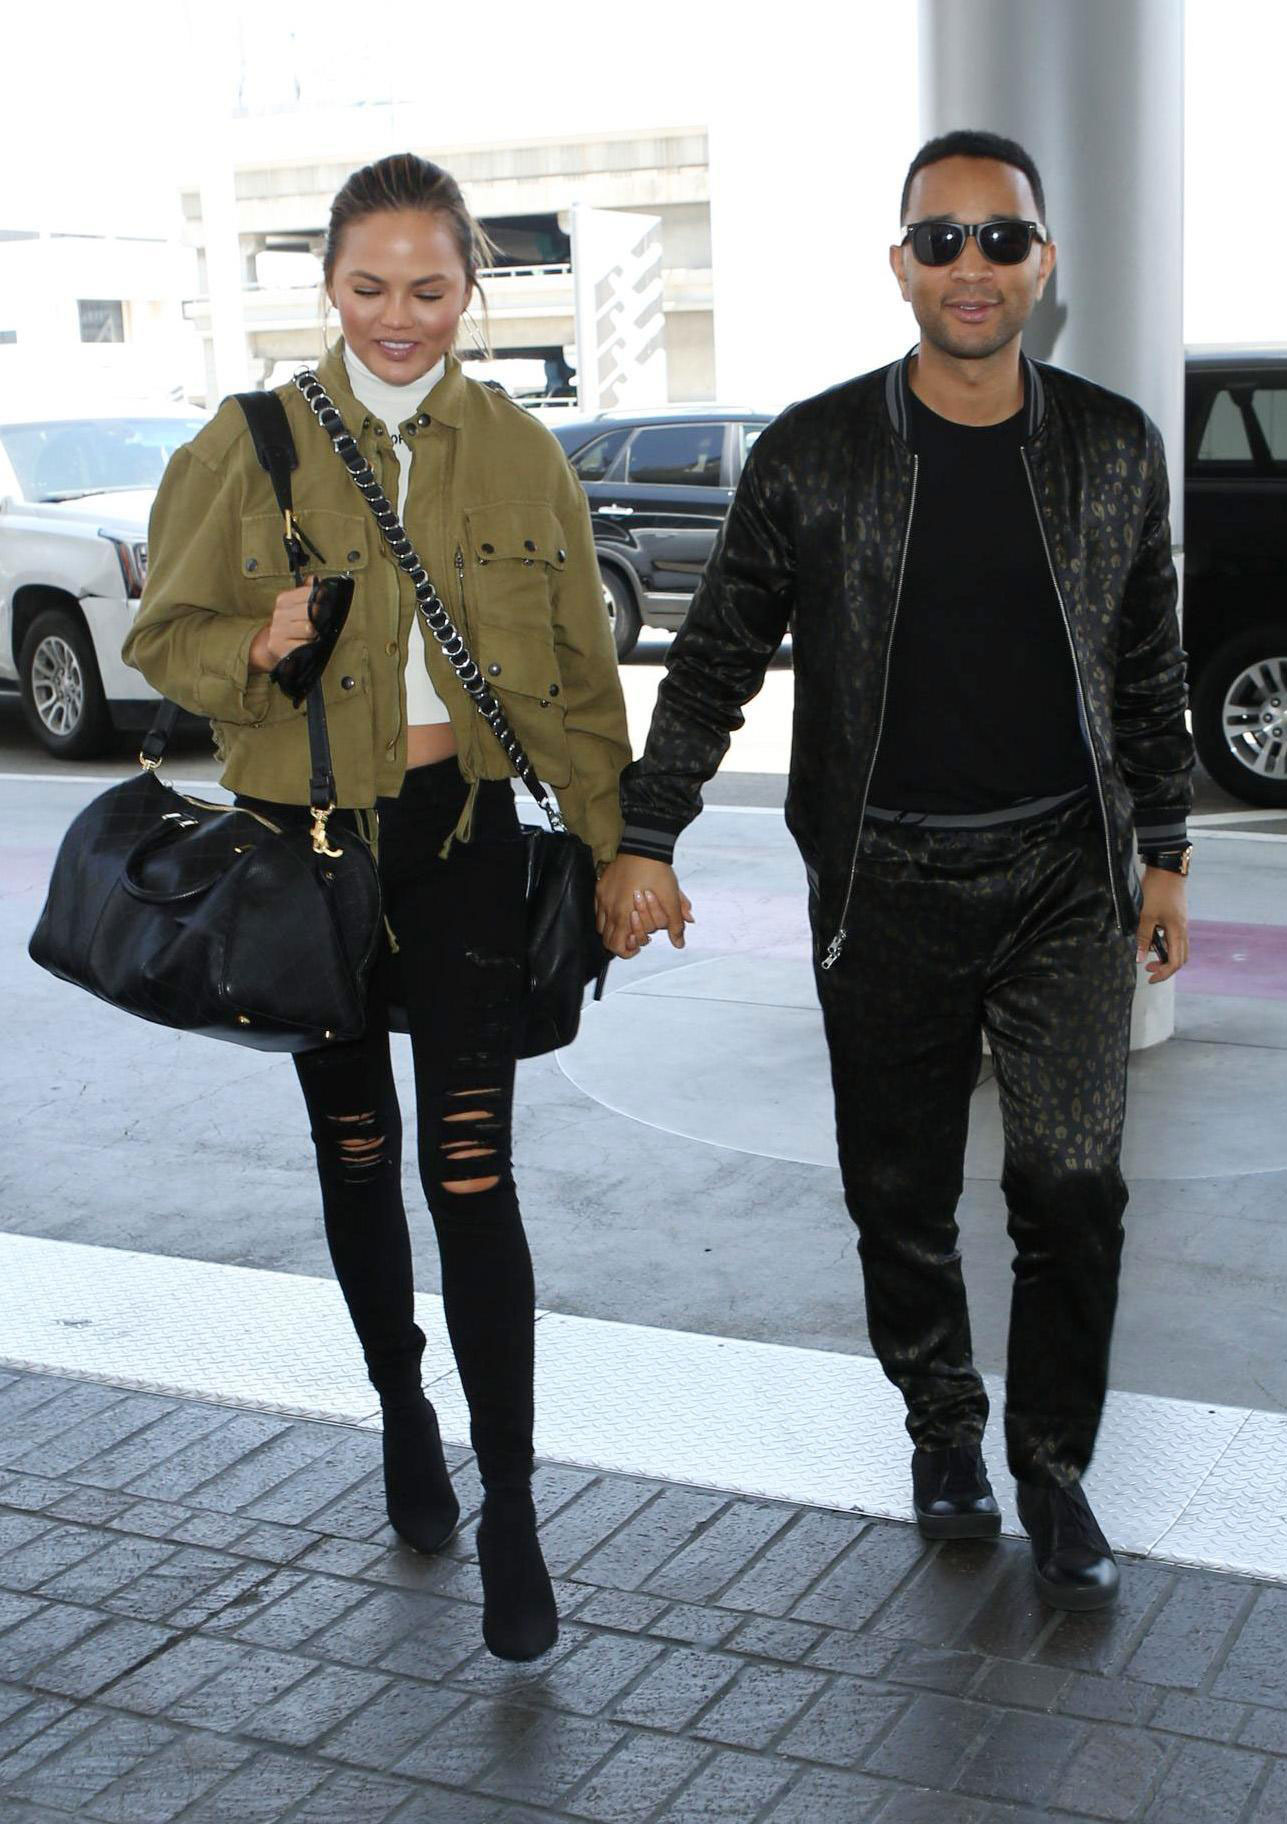 b5d8fcc6ef4 Chrissy Teigen wears a utility jacket with black ripped skinny jeans and  ankle boots.